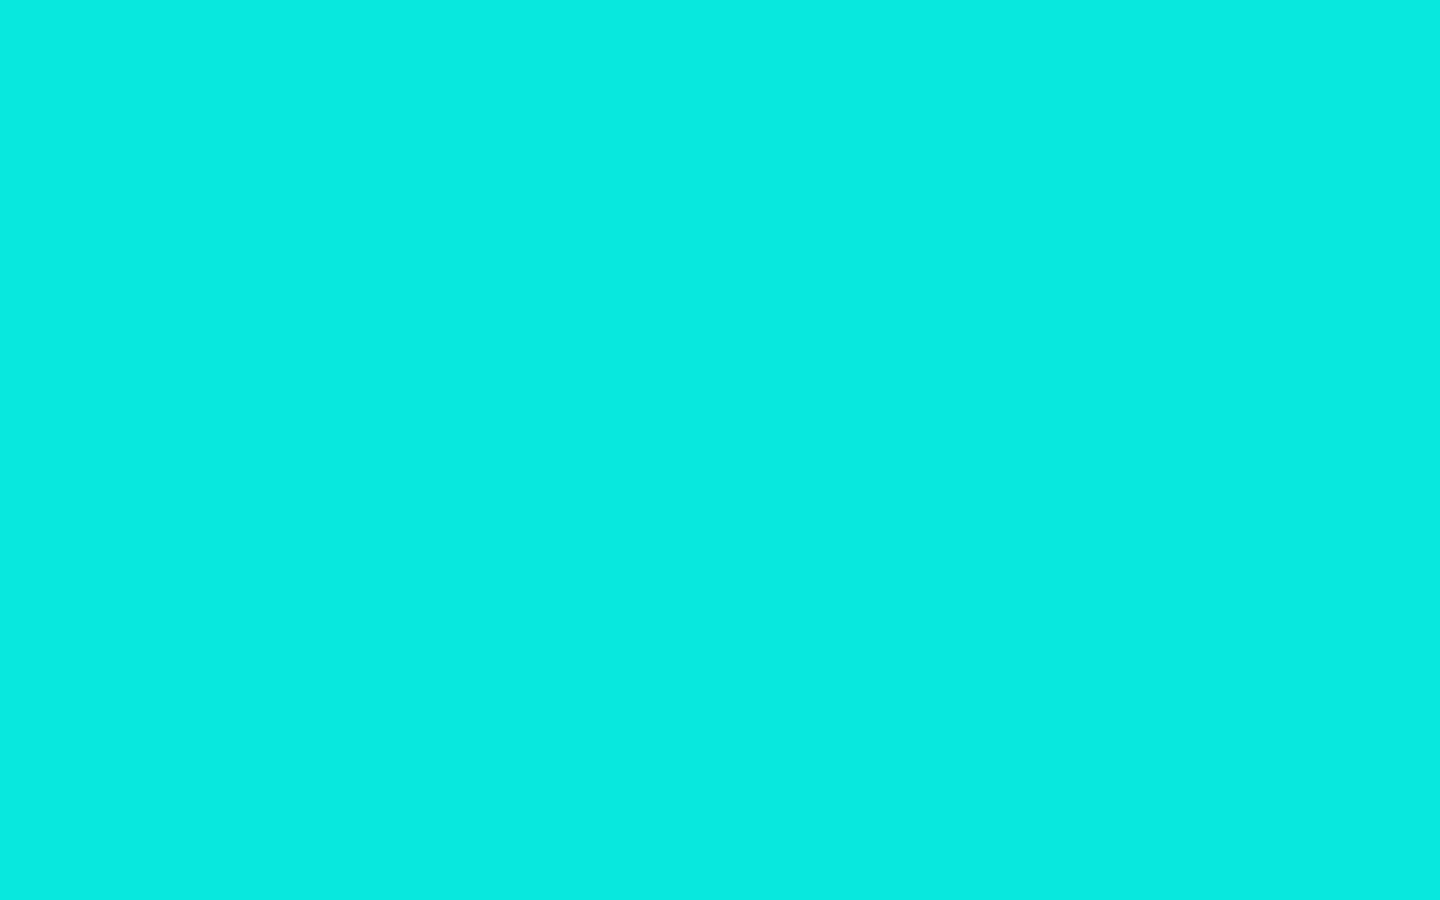 1440x900 Bright Turquoise Solid Color Background